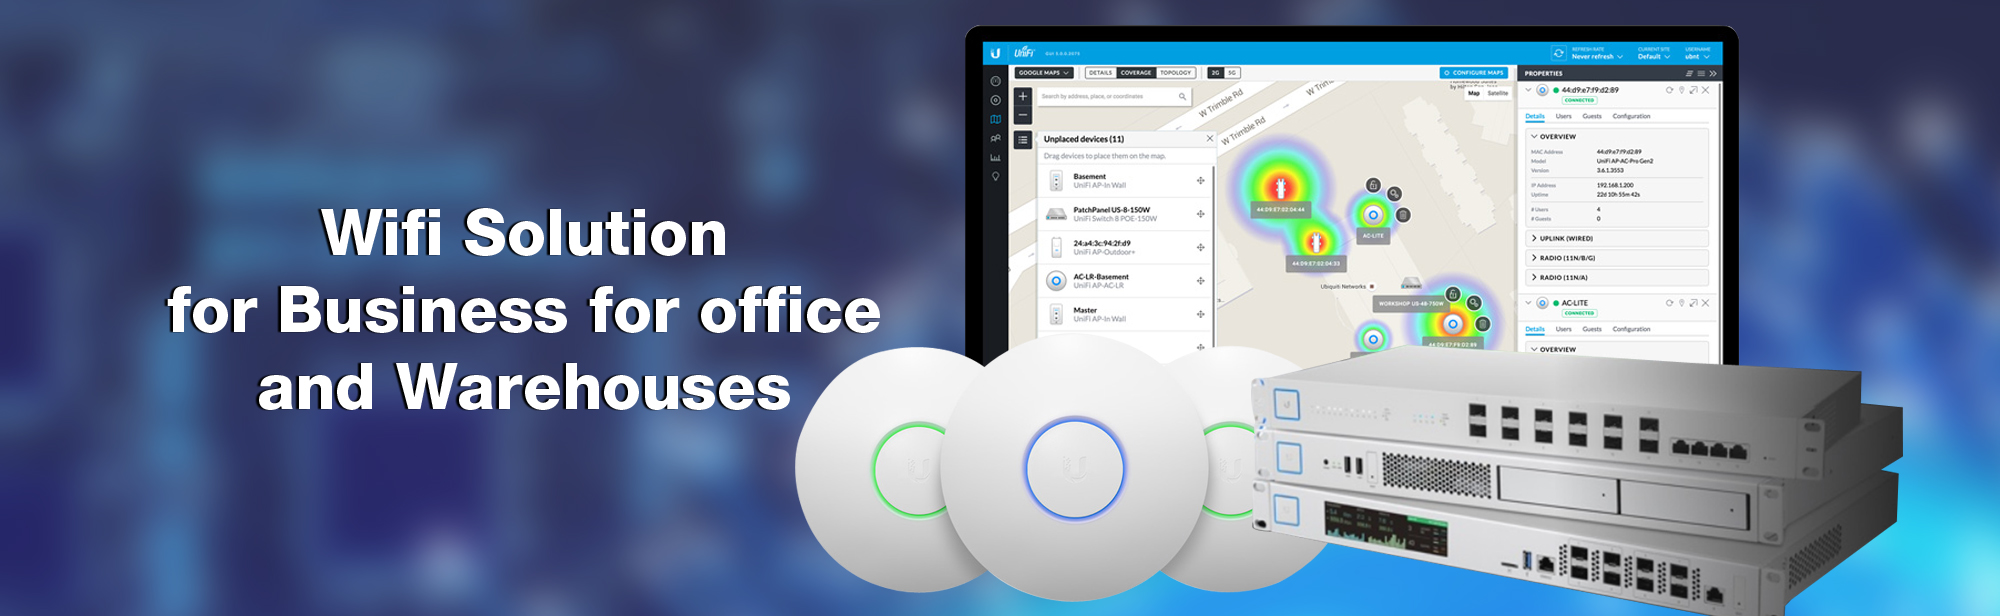 Wifi Solution for Business for office and Warehouses